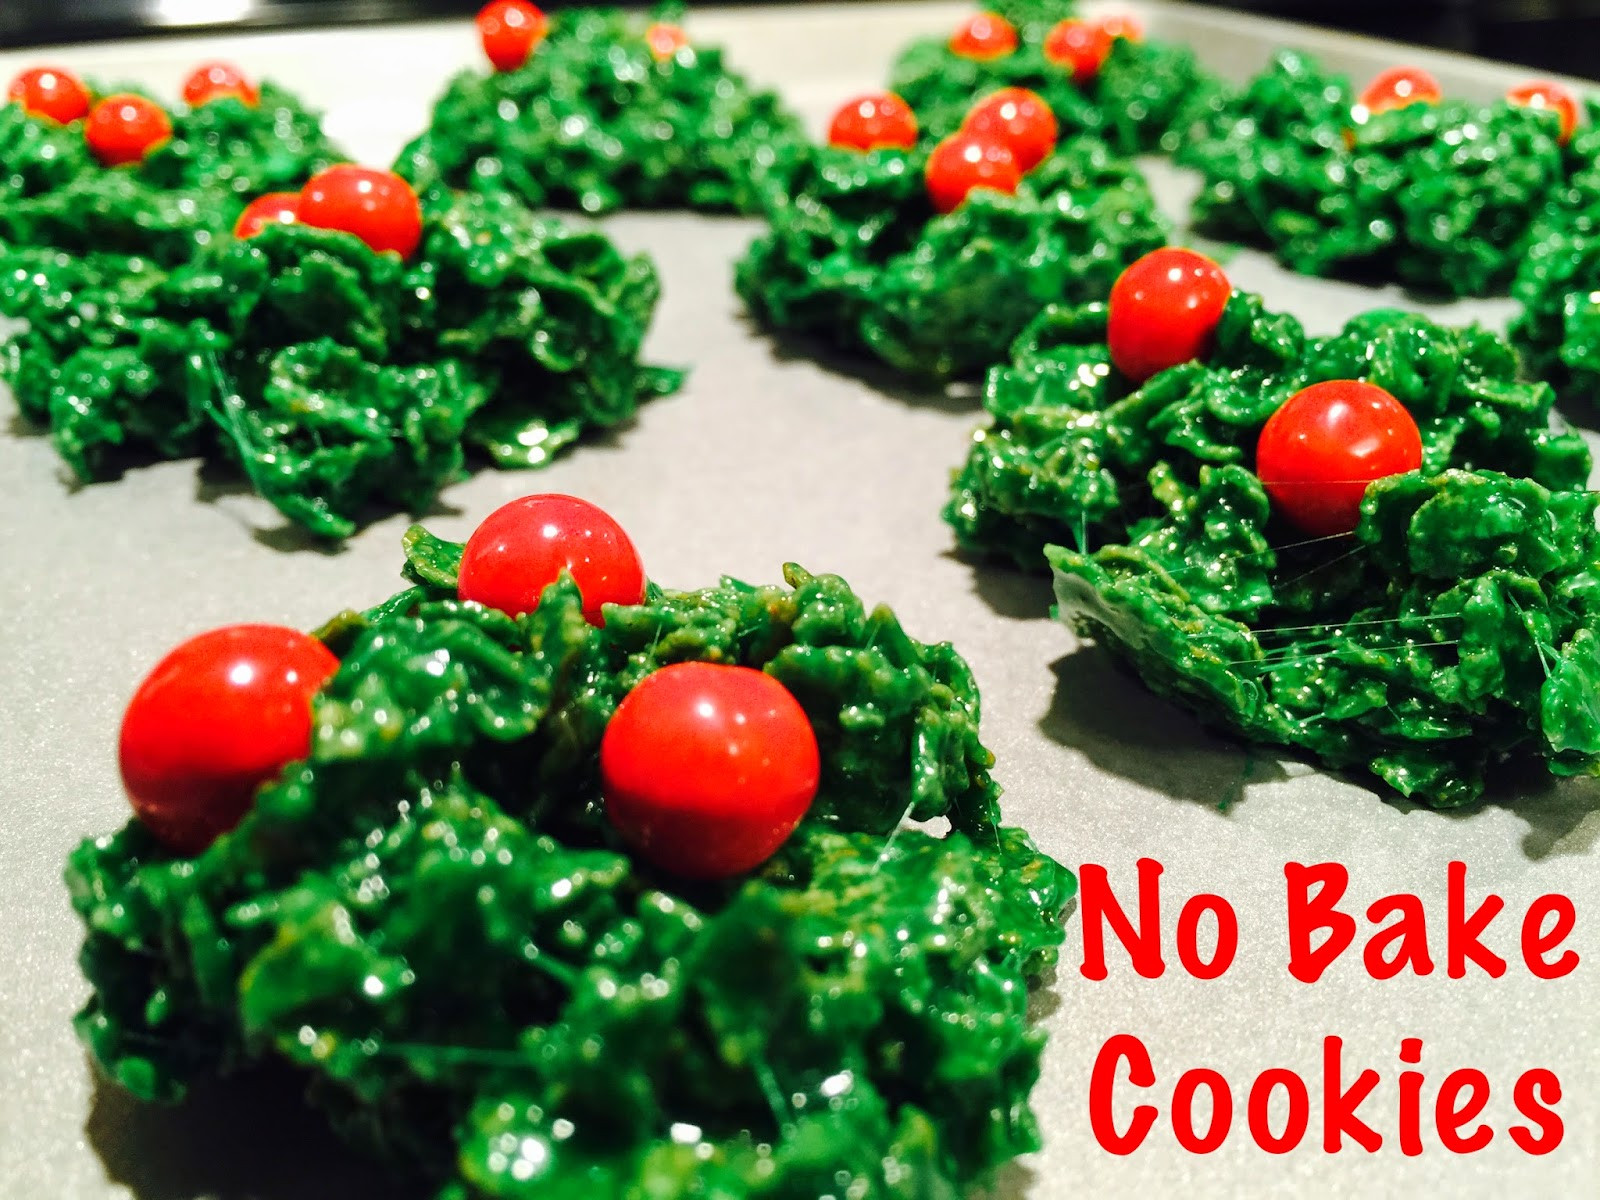 No Bake Holiday Cookies  Everything Kelly Jean No Bake Holiday Cookies